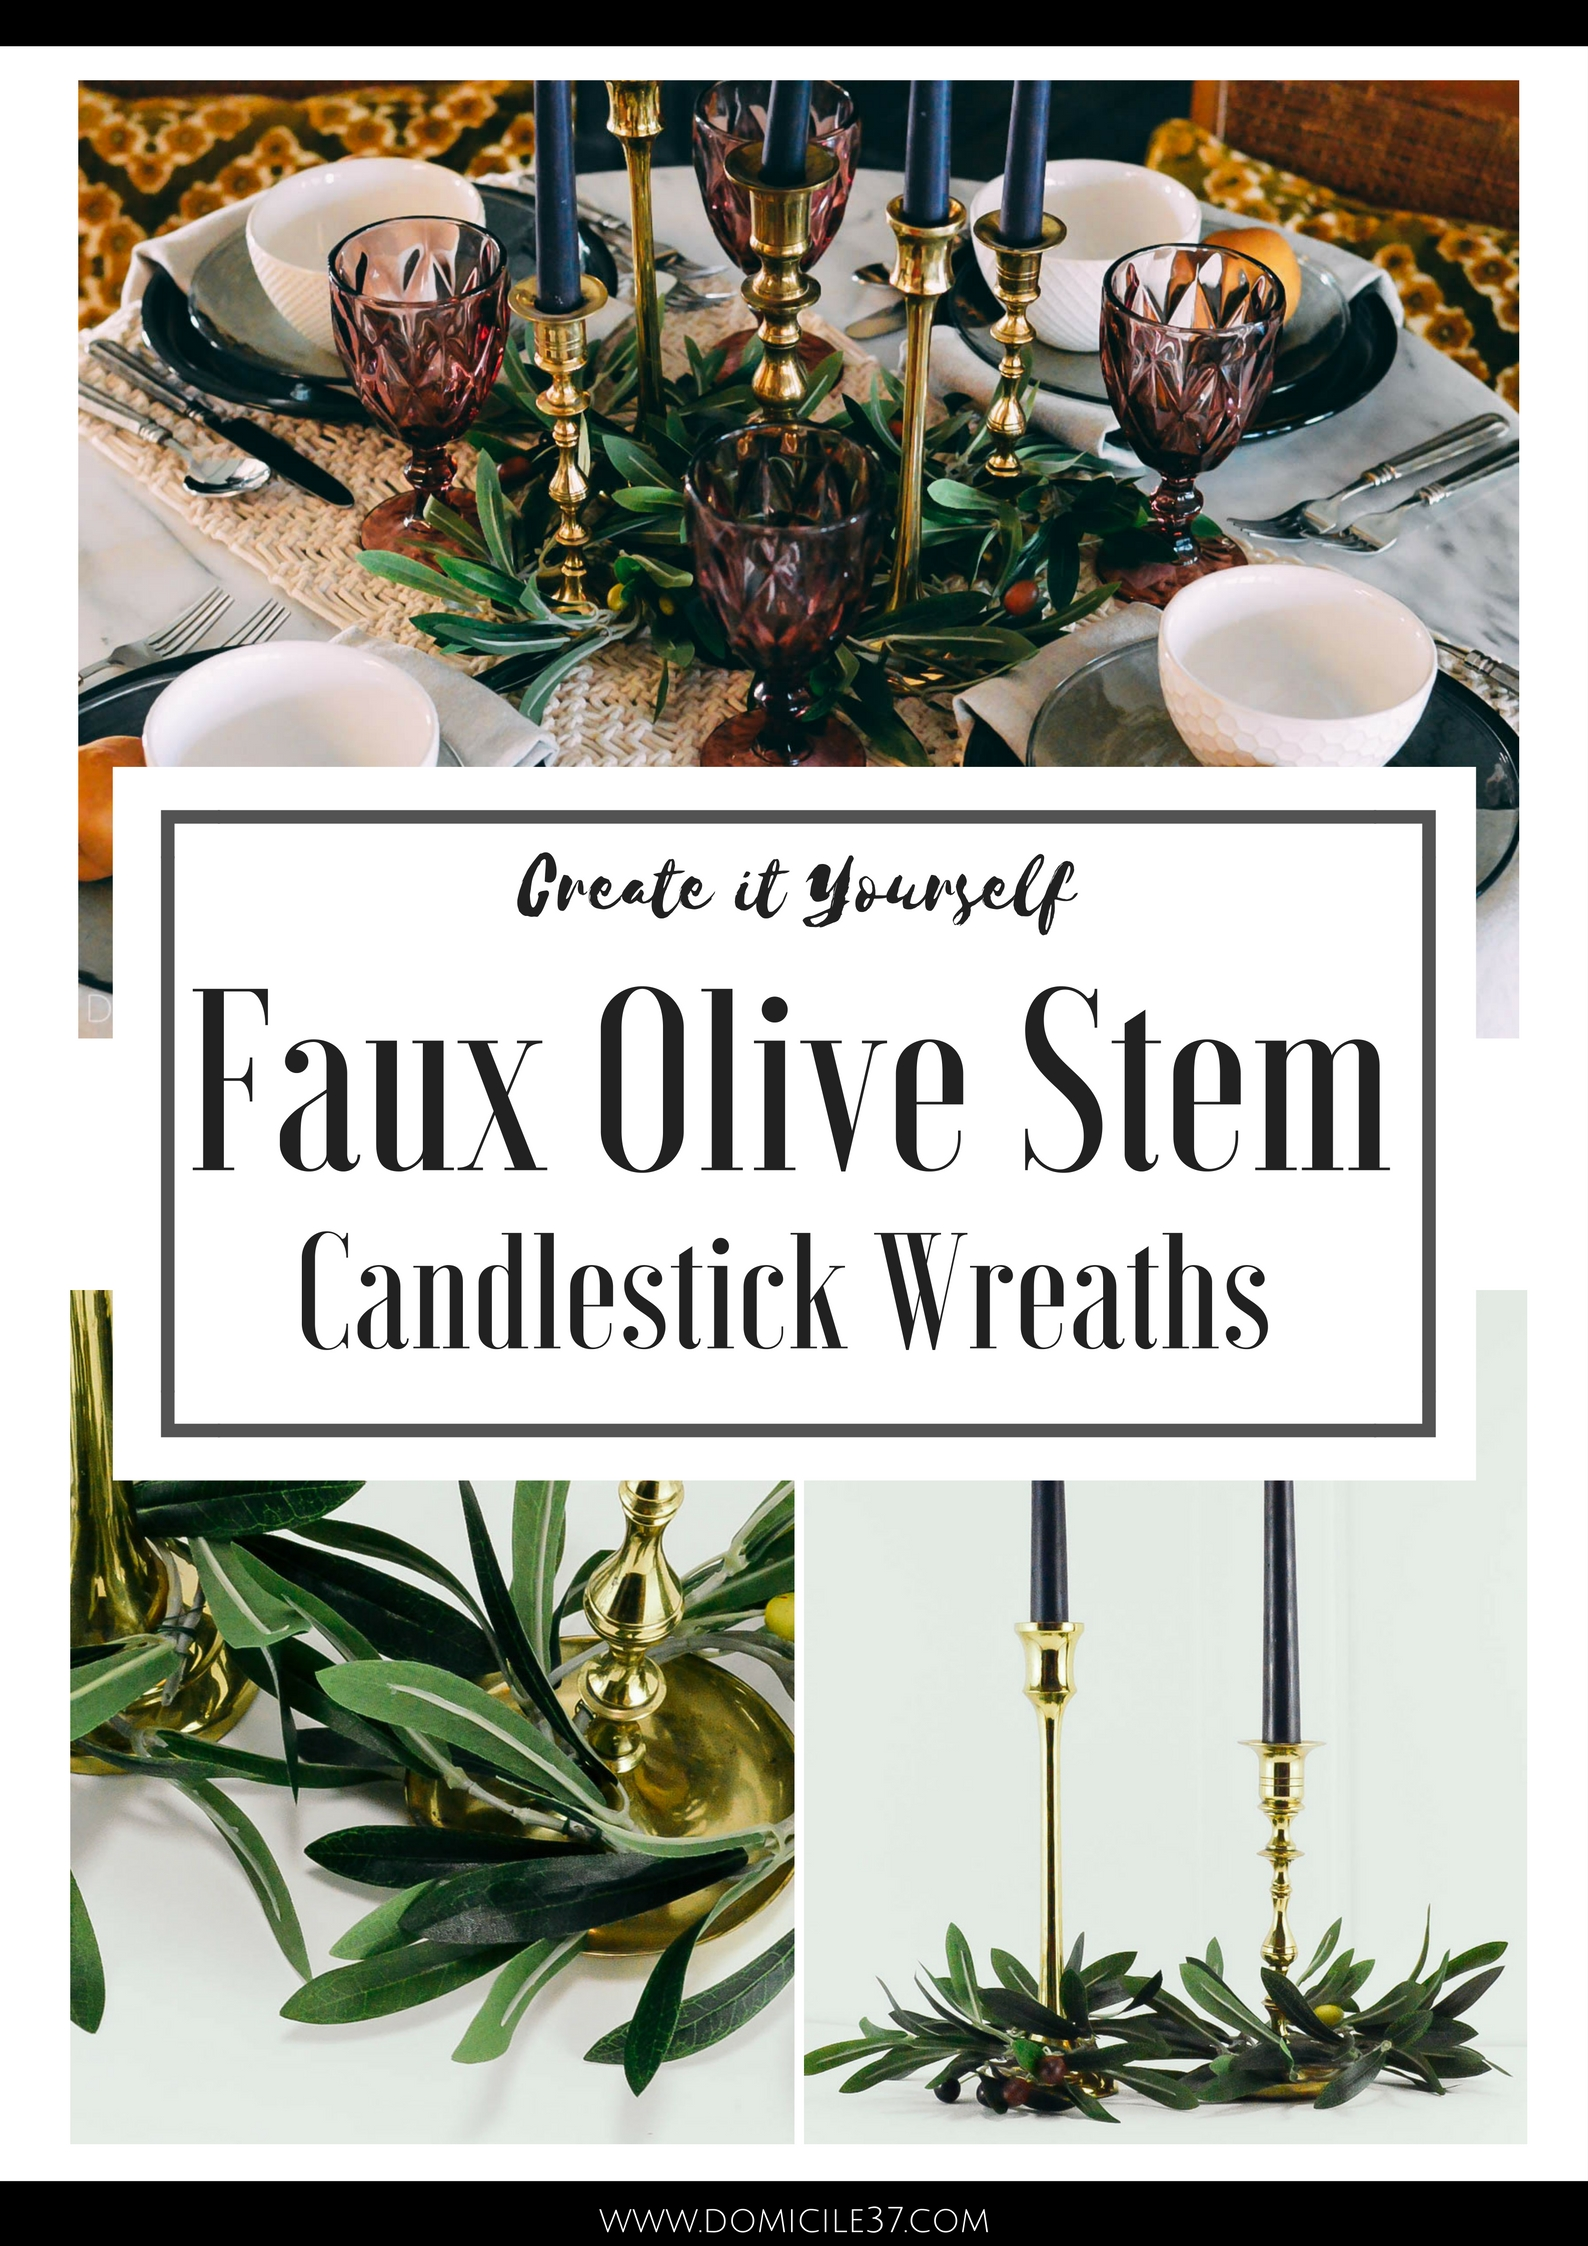 DIY Candlestick Wreaths | Faux Olive Stems | Olive Branches | Fall Tablescape Ideas | Table setting ideas | Eclectic Tablescape